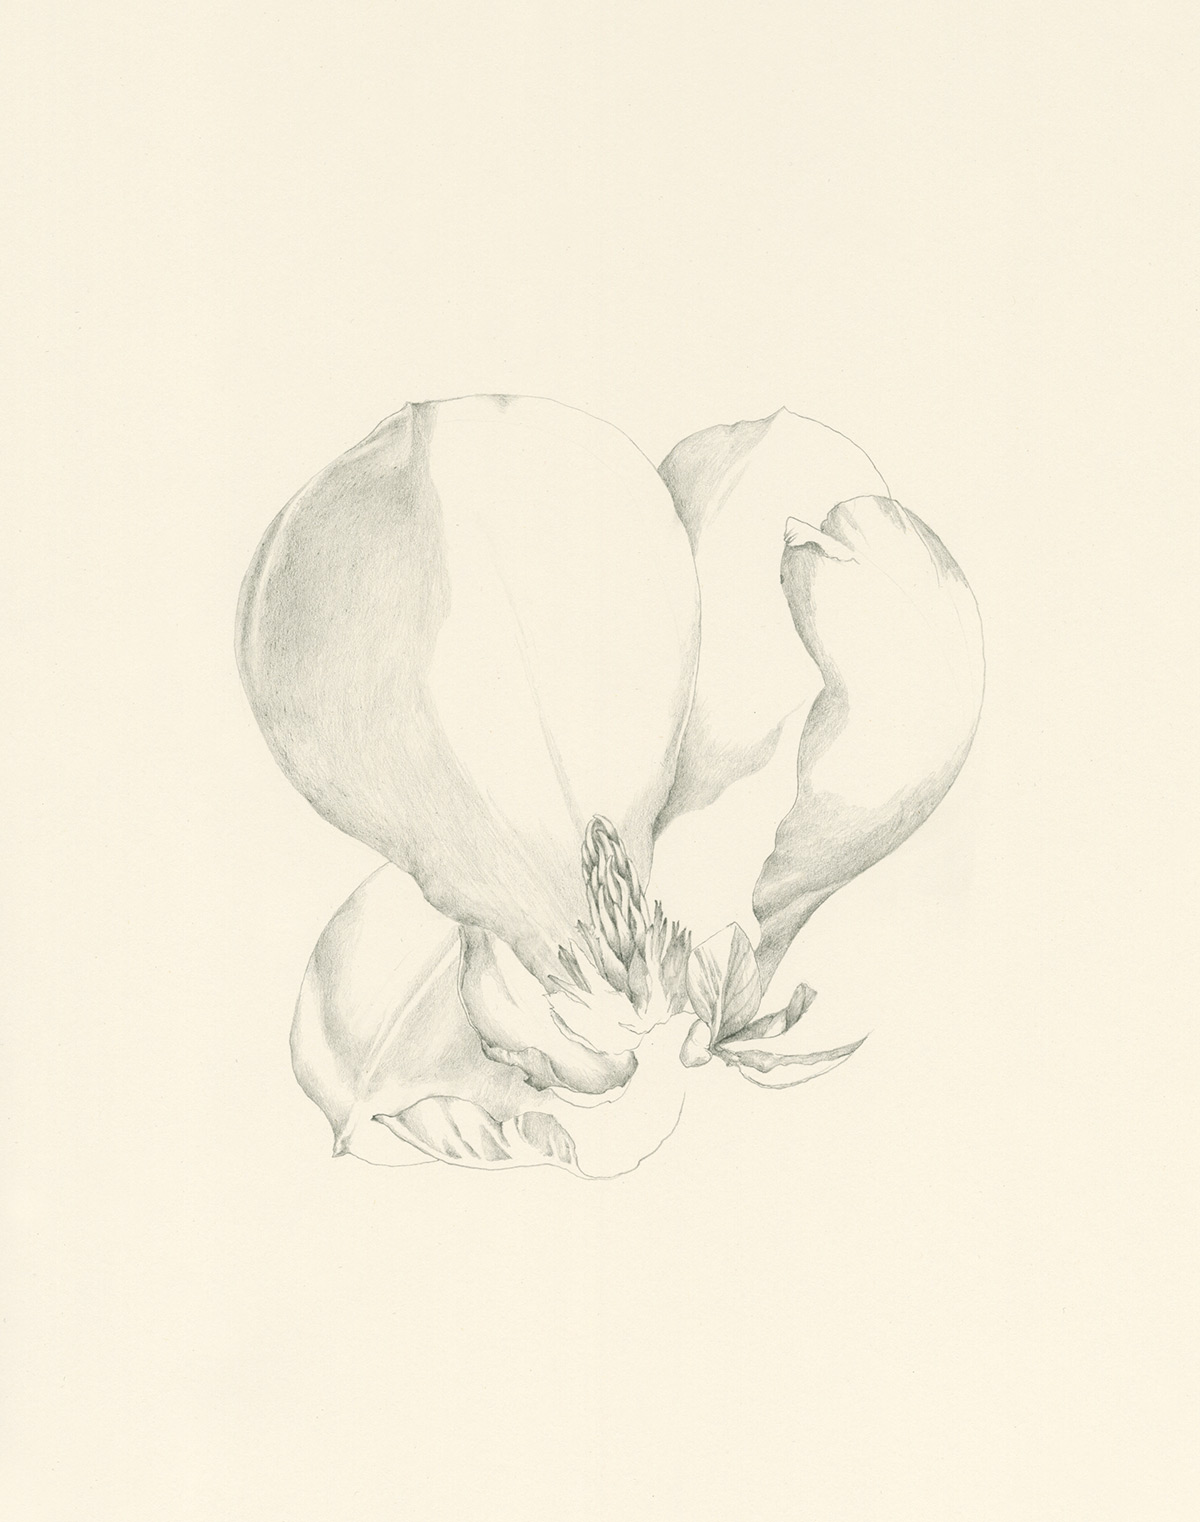 Magnolia Blossom drawing by Iskra